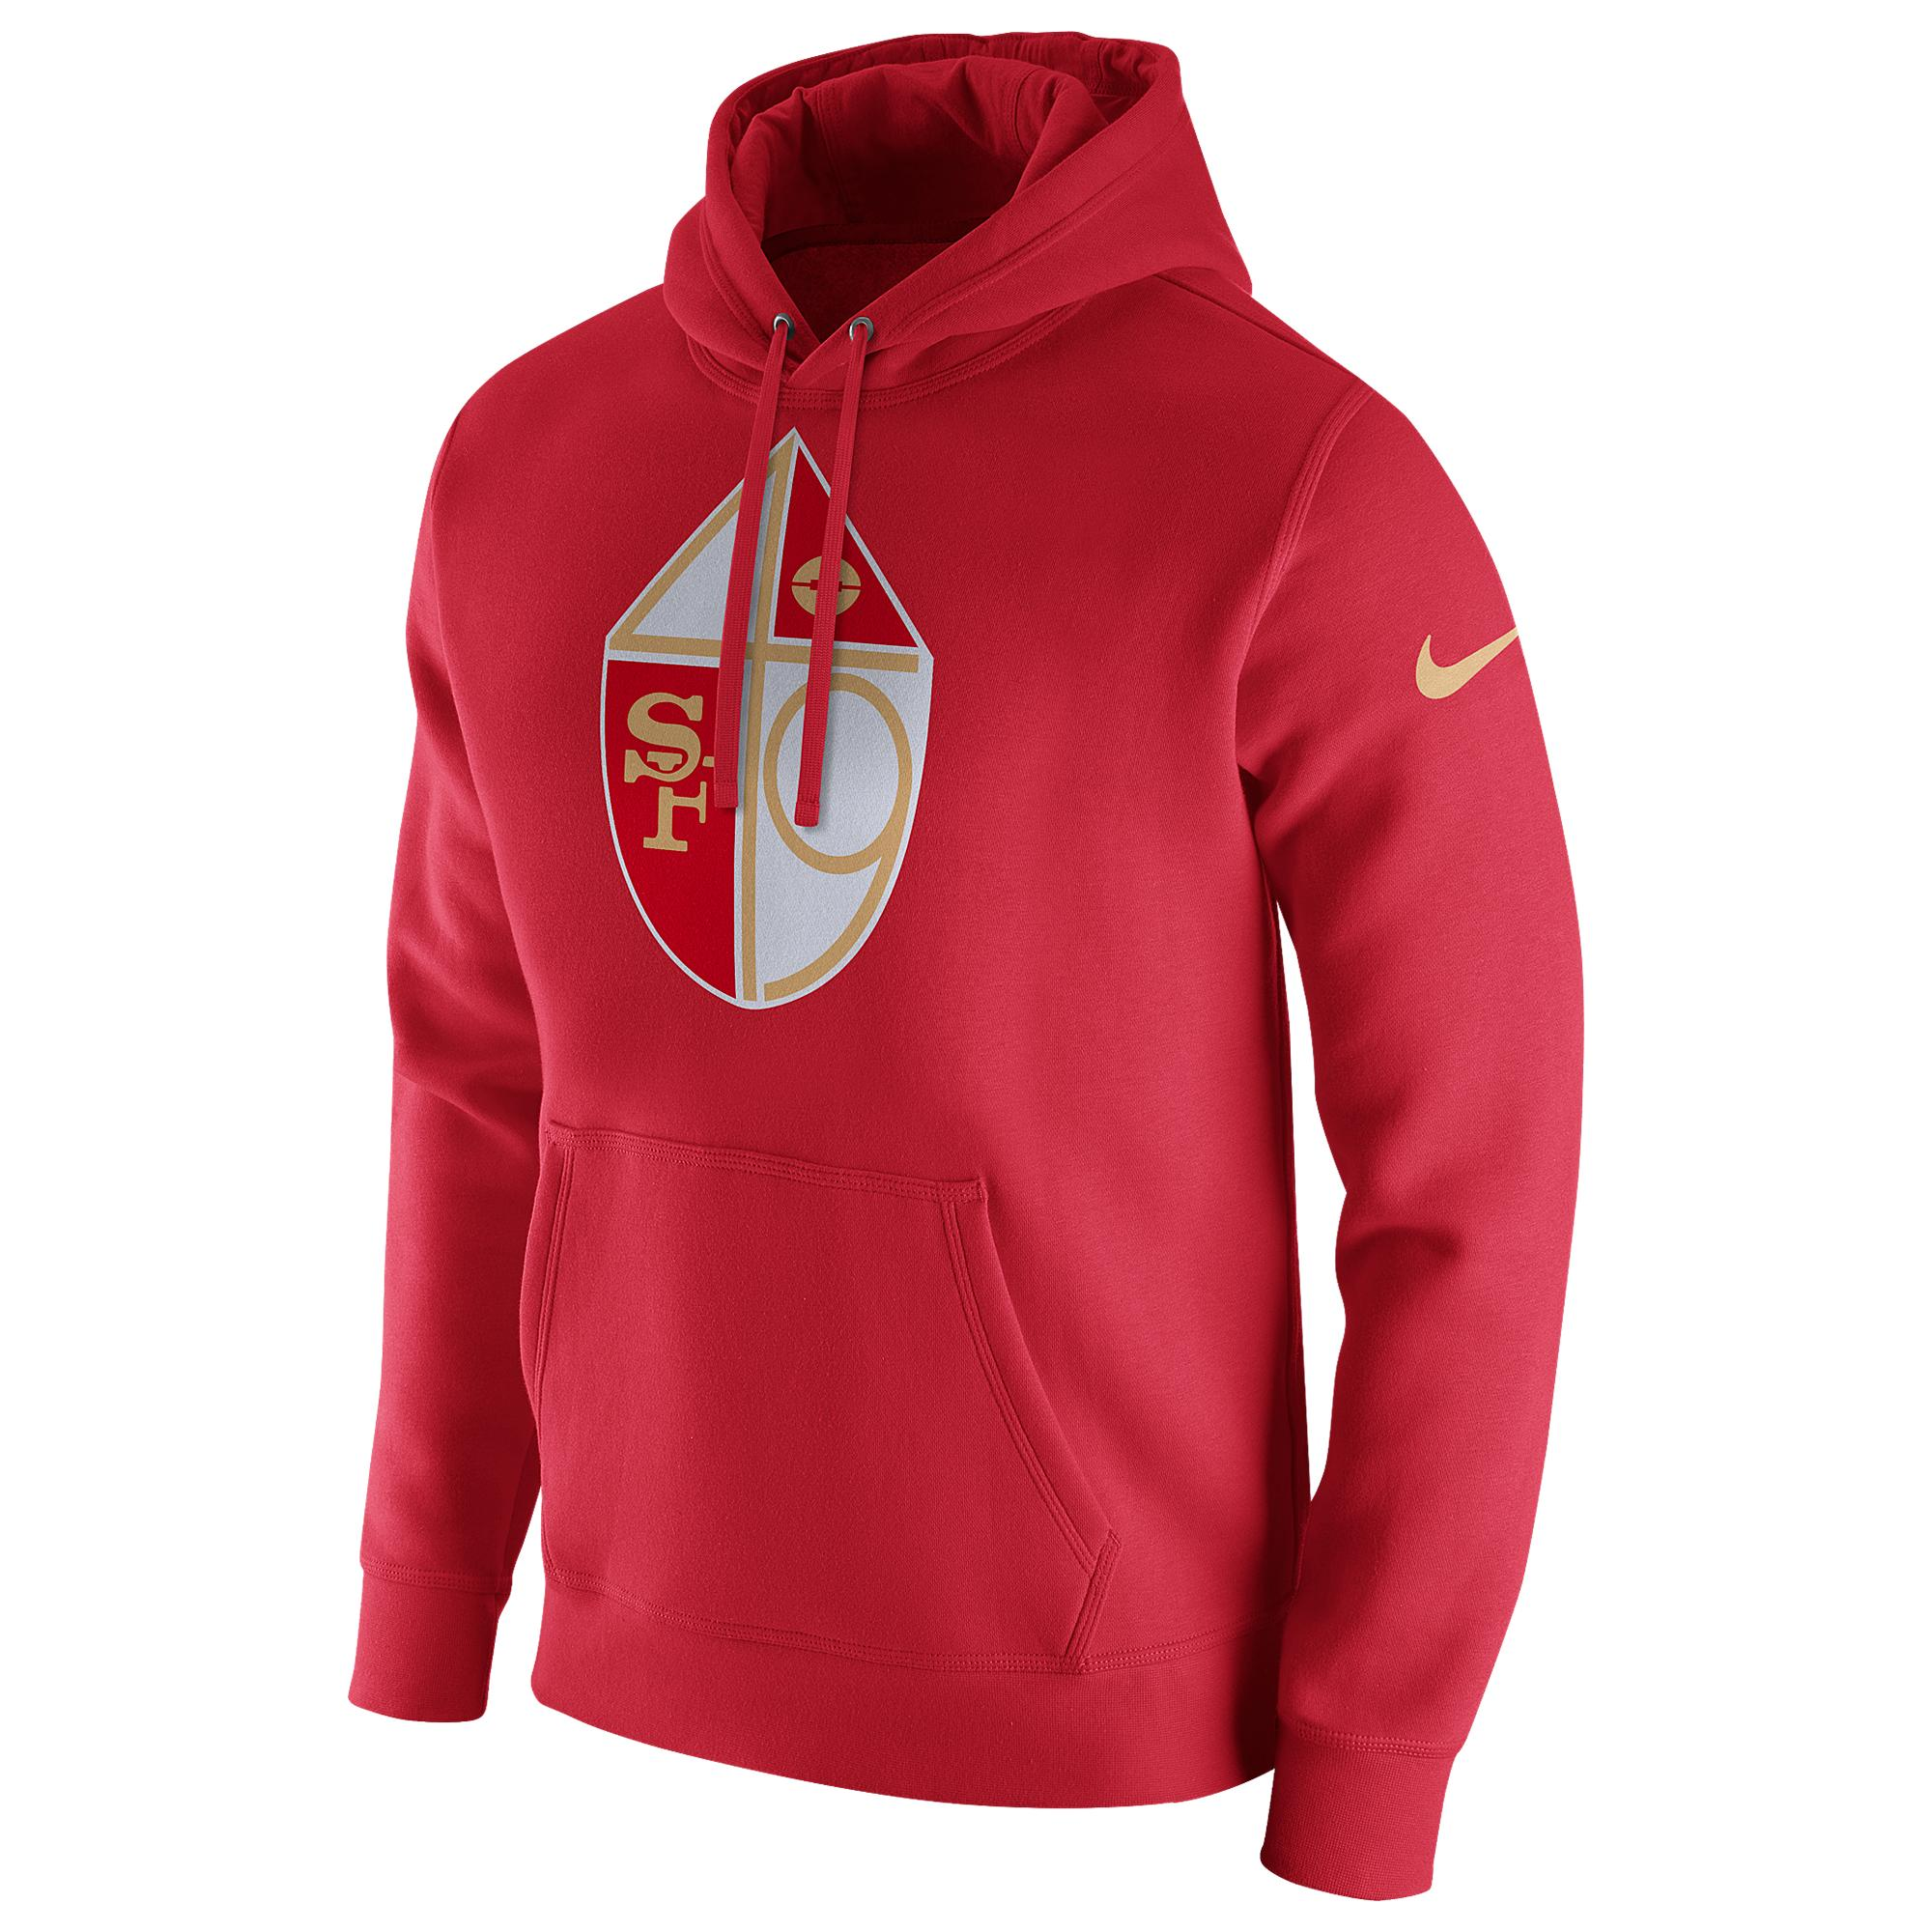 e222a9c54d Nike - Red San Francisco 49ers Nfl Pullover Fleece Club Hoodie for Men -  Lyst. View fullscreen